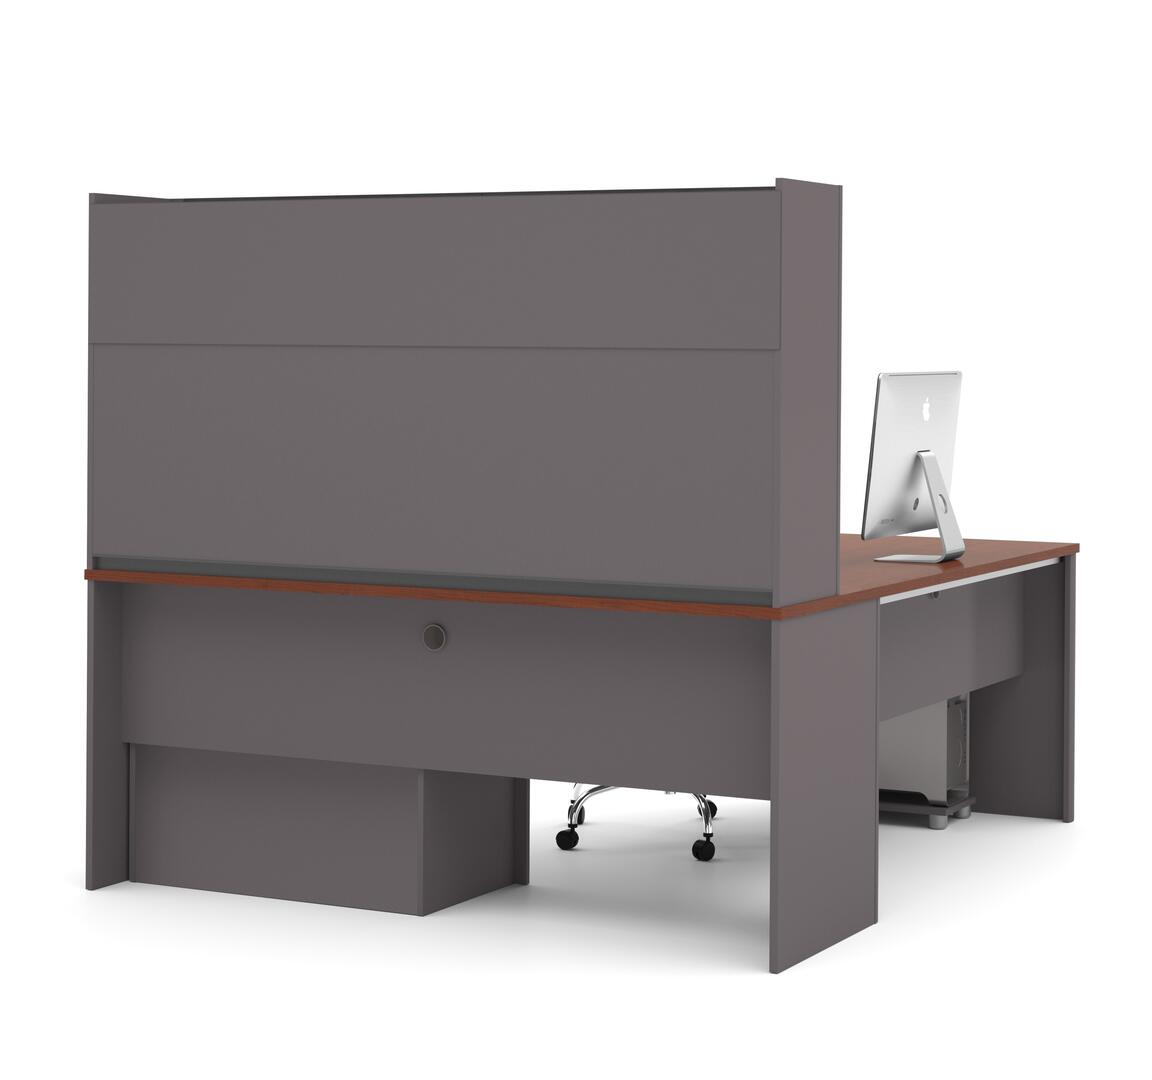 Bestar furniture 9386739 modern l shape office desk for Furniture connection